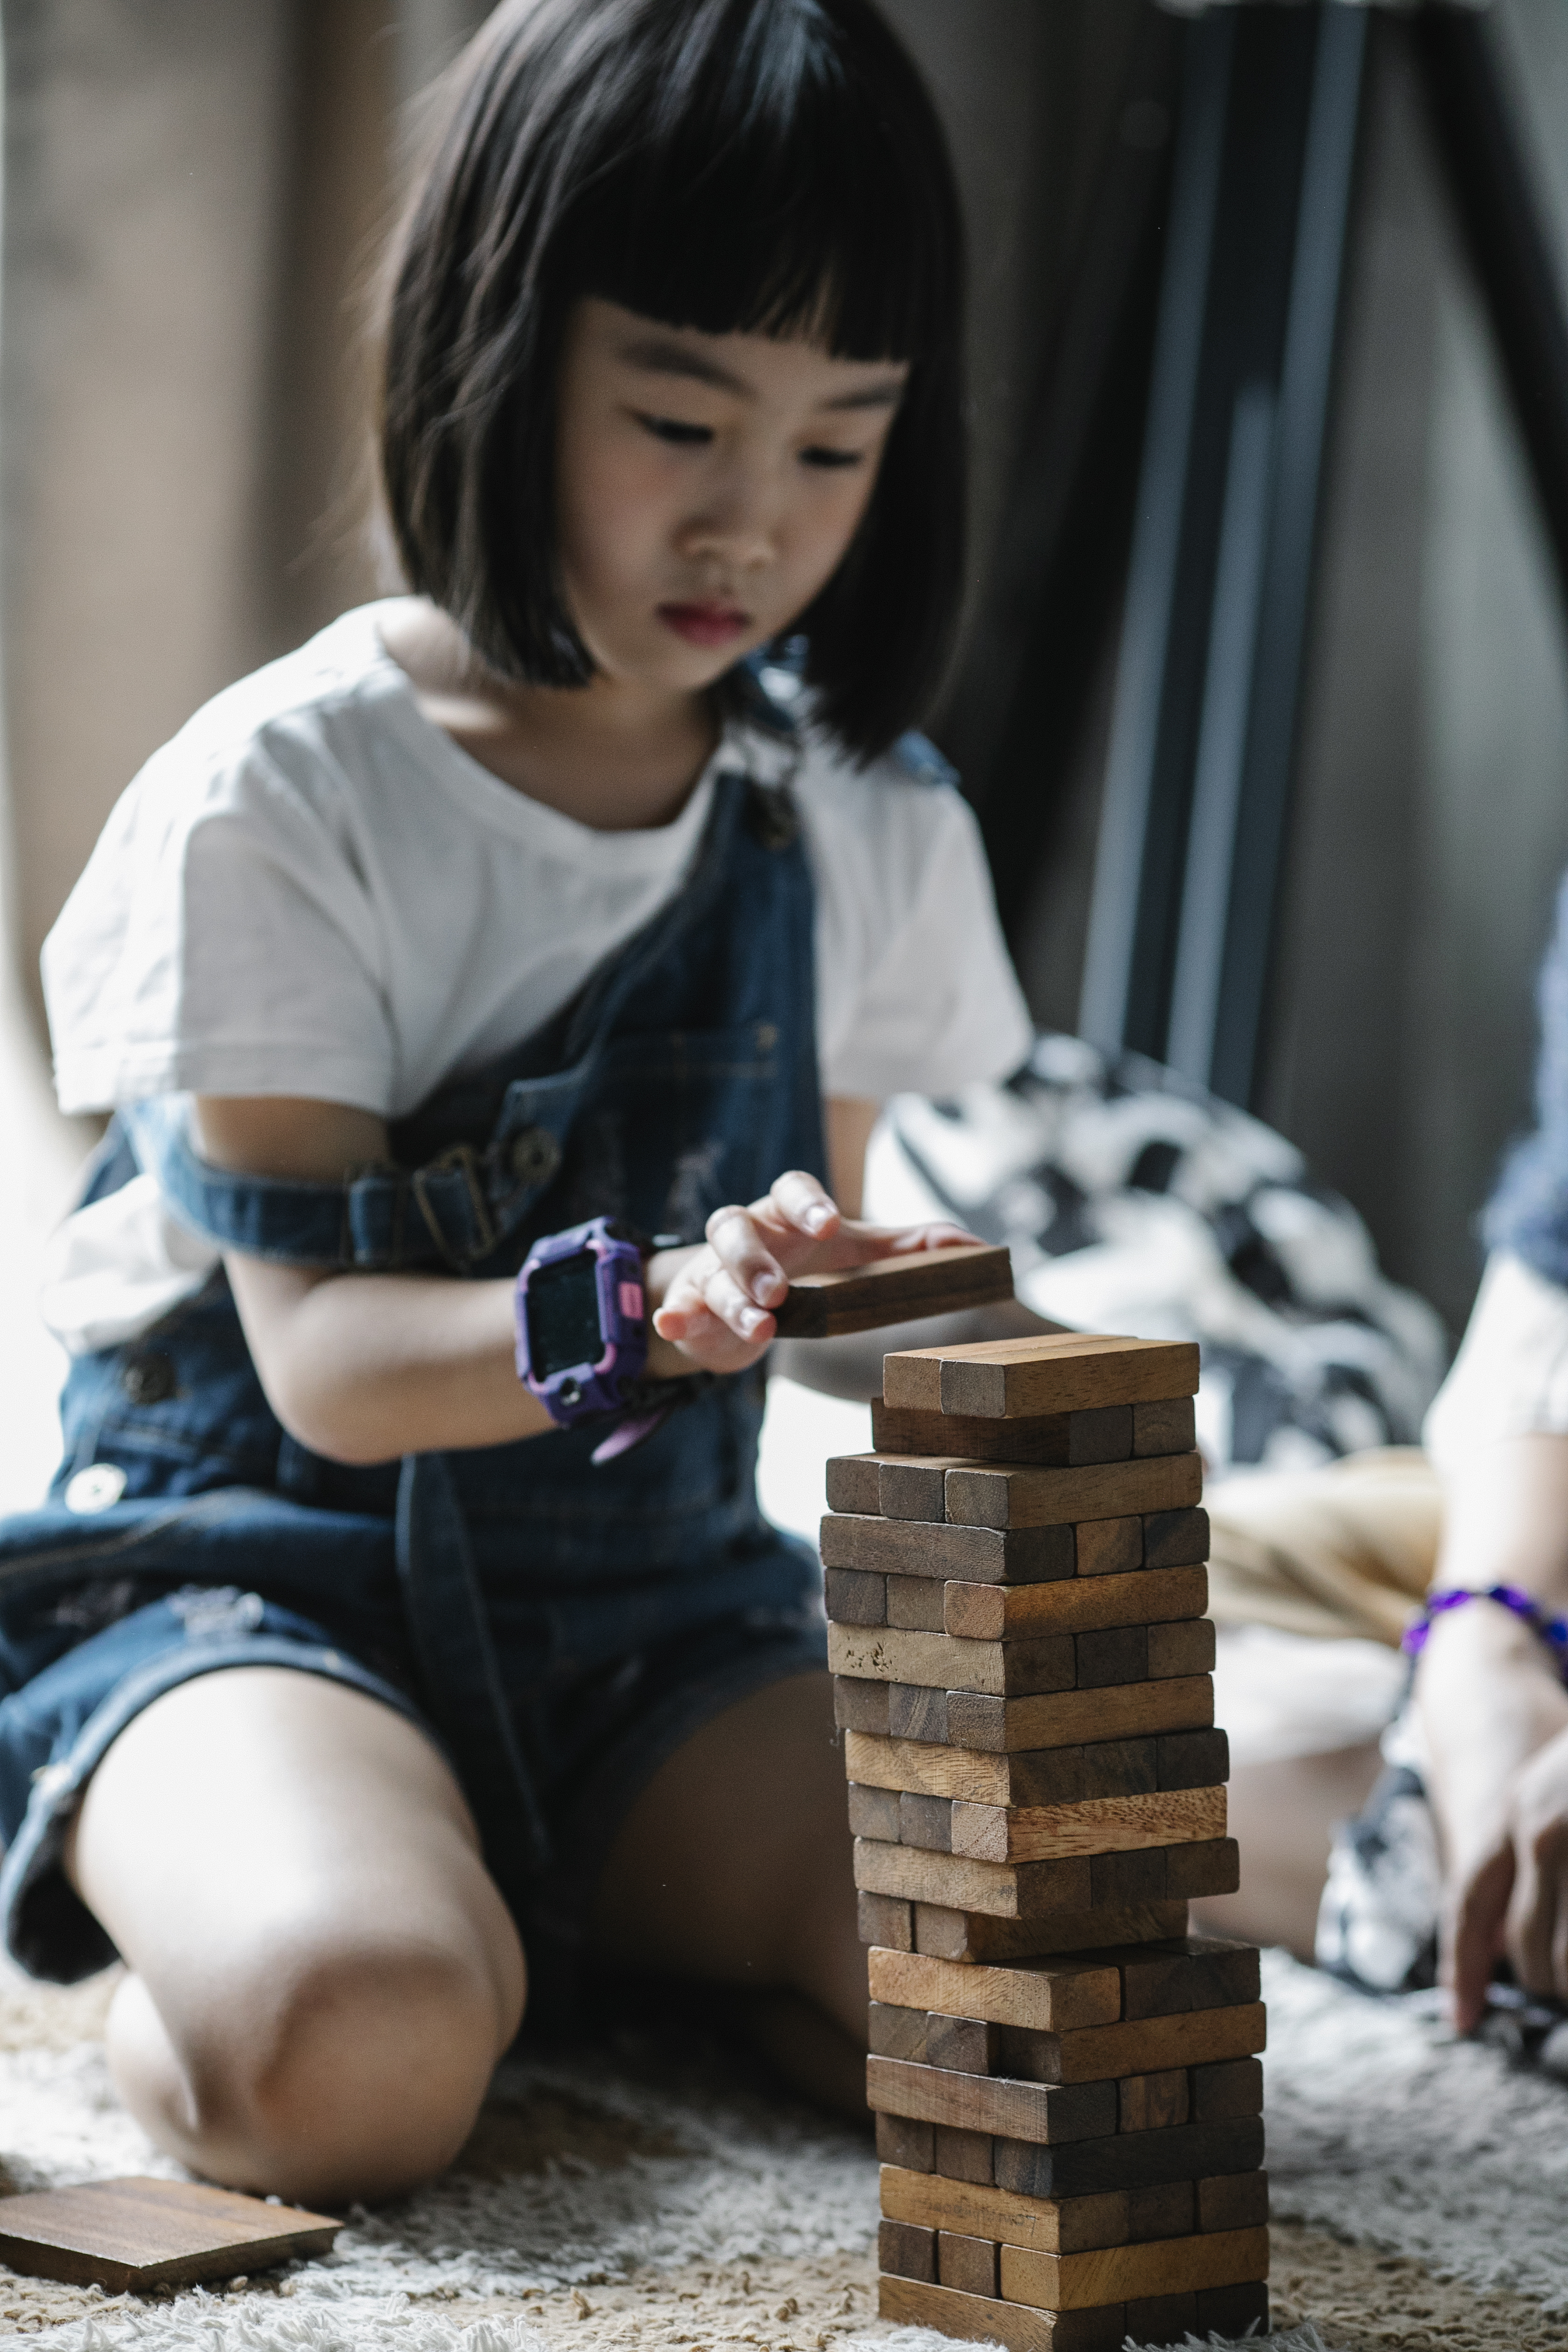 serious asian child playing with tower game sitting on carpet